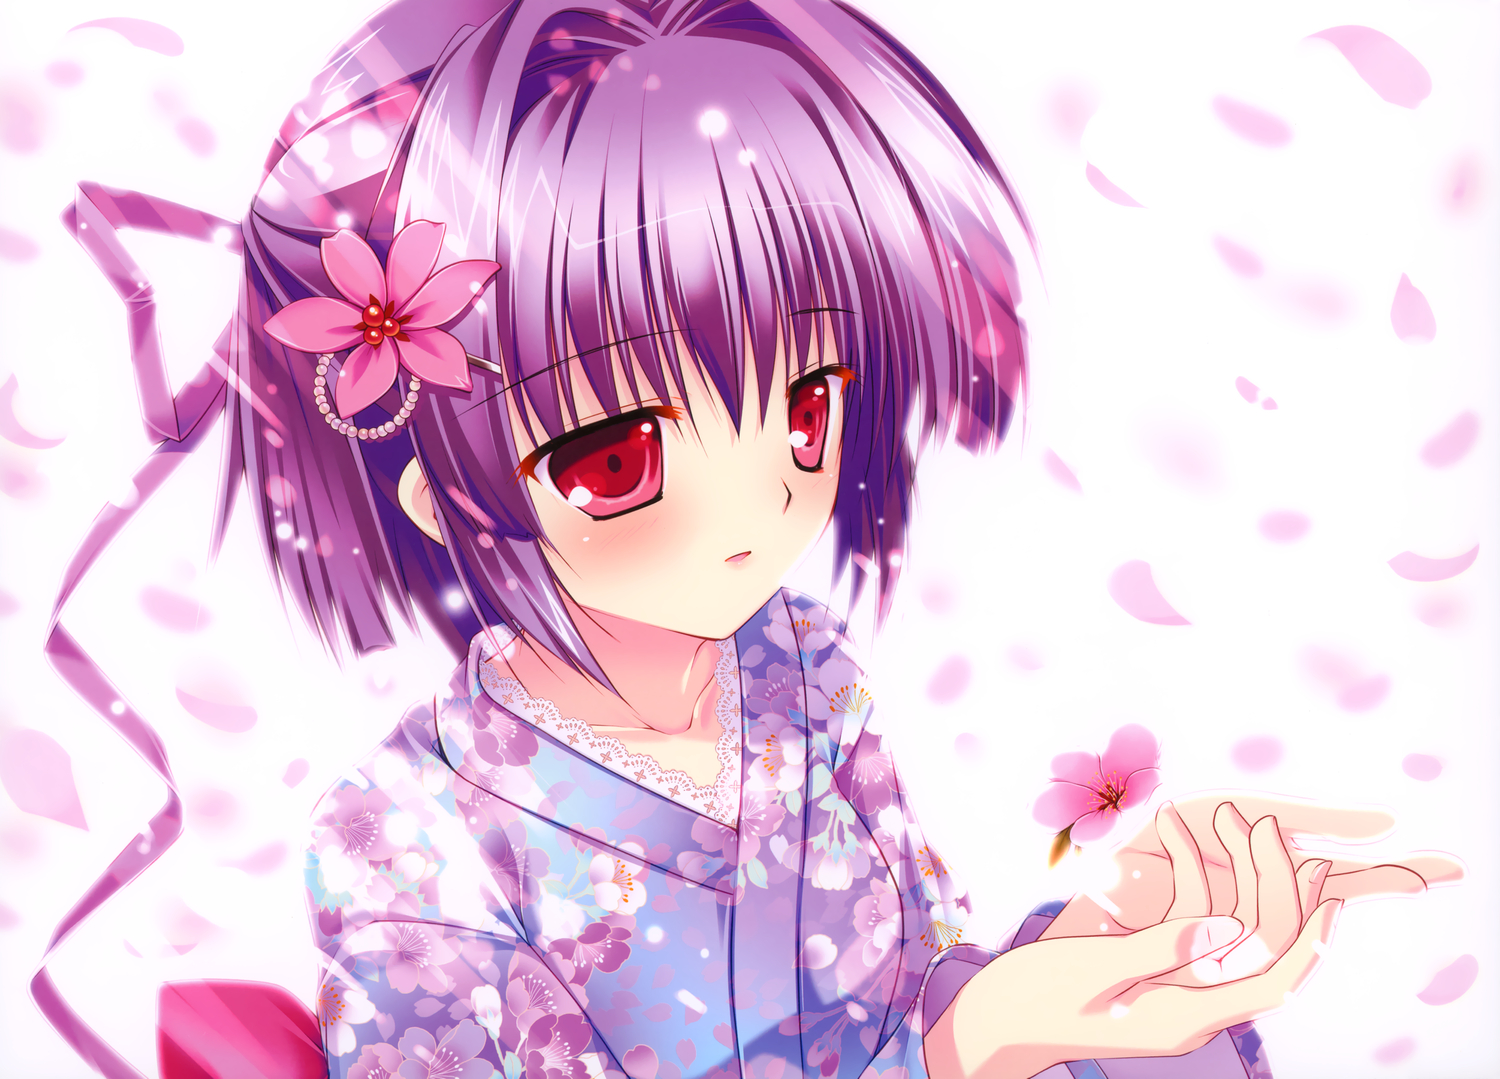 close flowers japanese_clothes mikeou original petals pink_chuchu purple_hair red_eyes